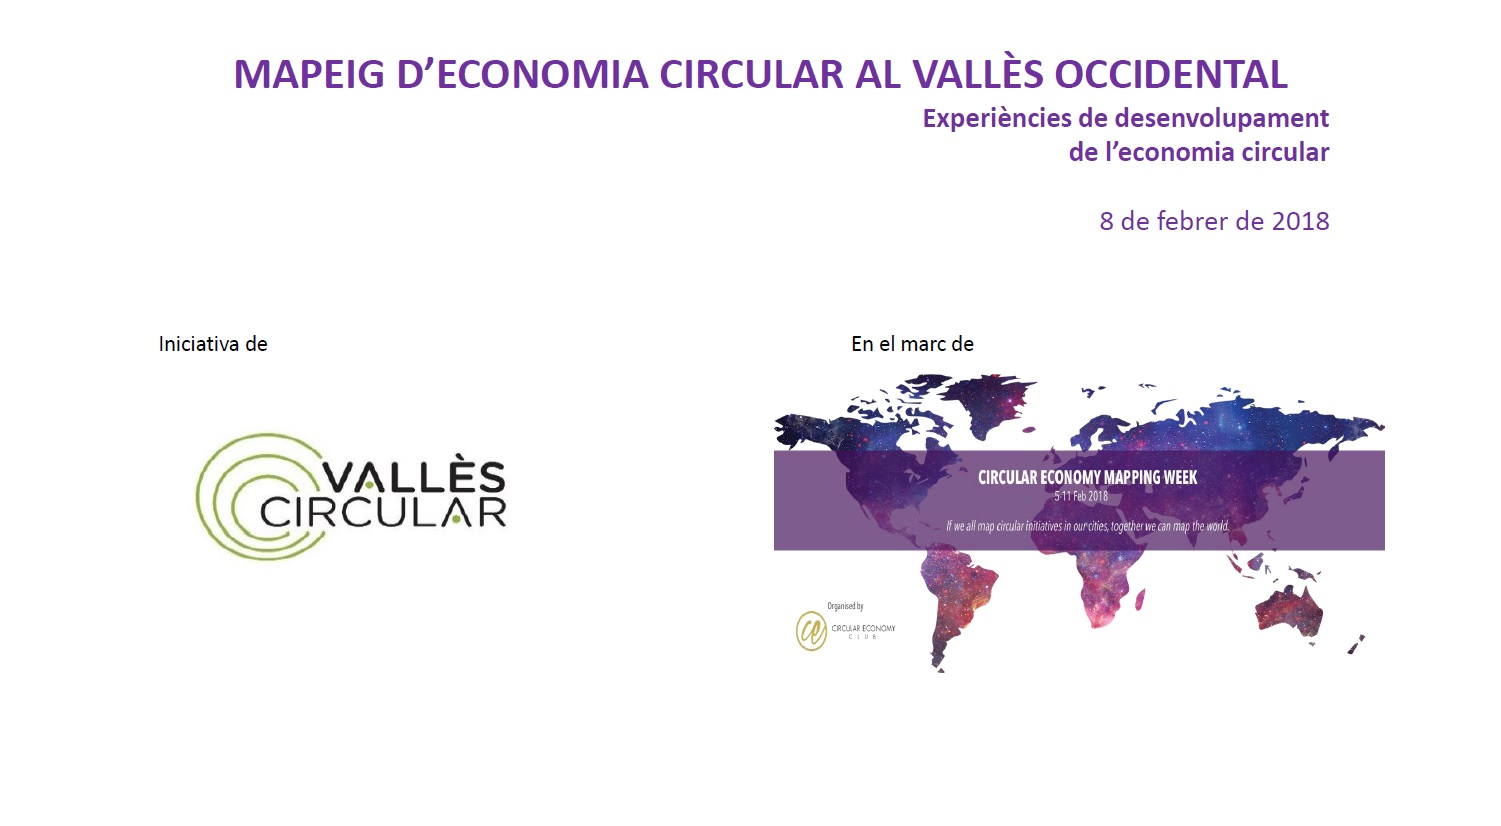 Informe Mapeig d'Economia Circular al Vallès Occidental